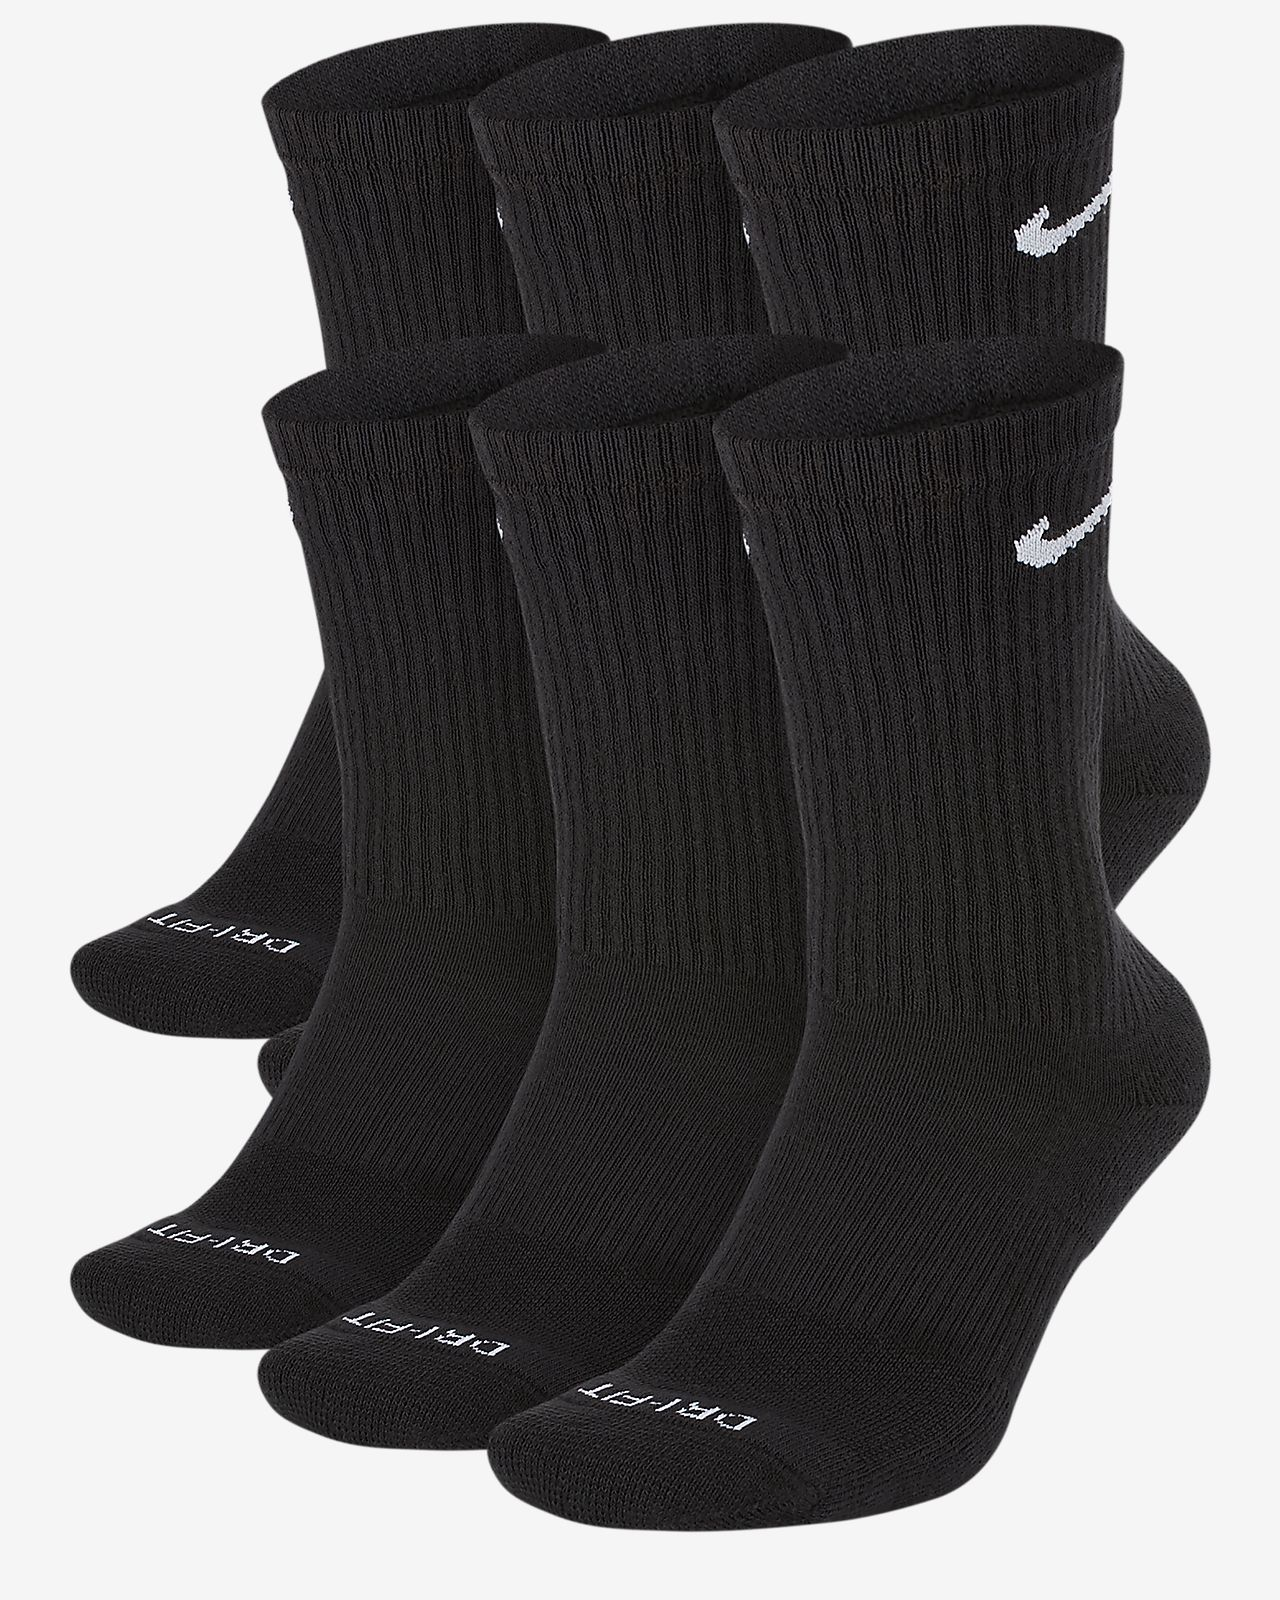 Nike Everyday Plus Cushion Crew Training Socks (6 Pair)